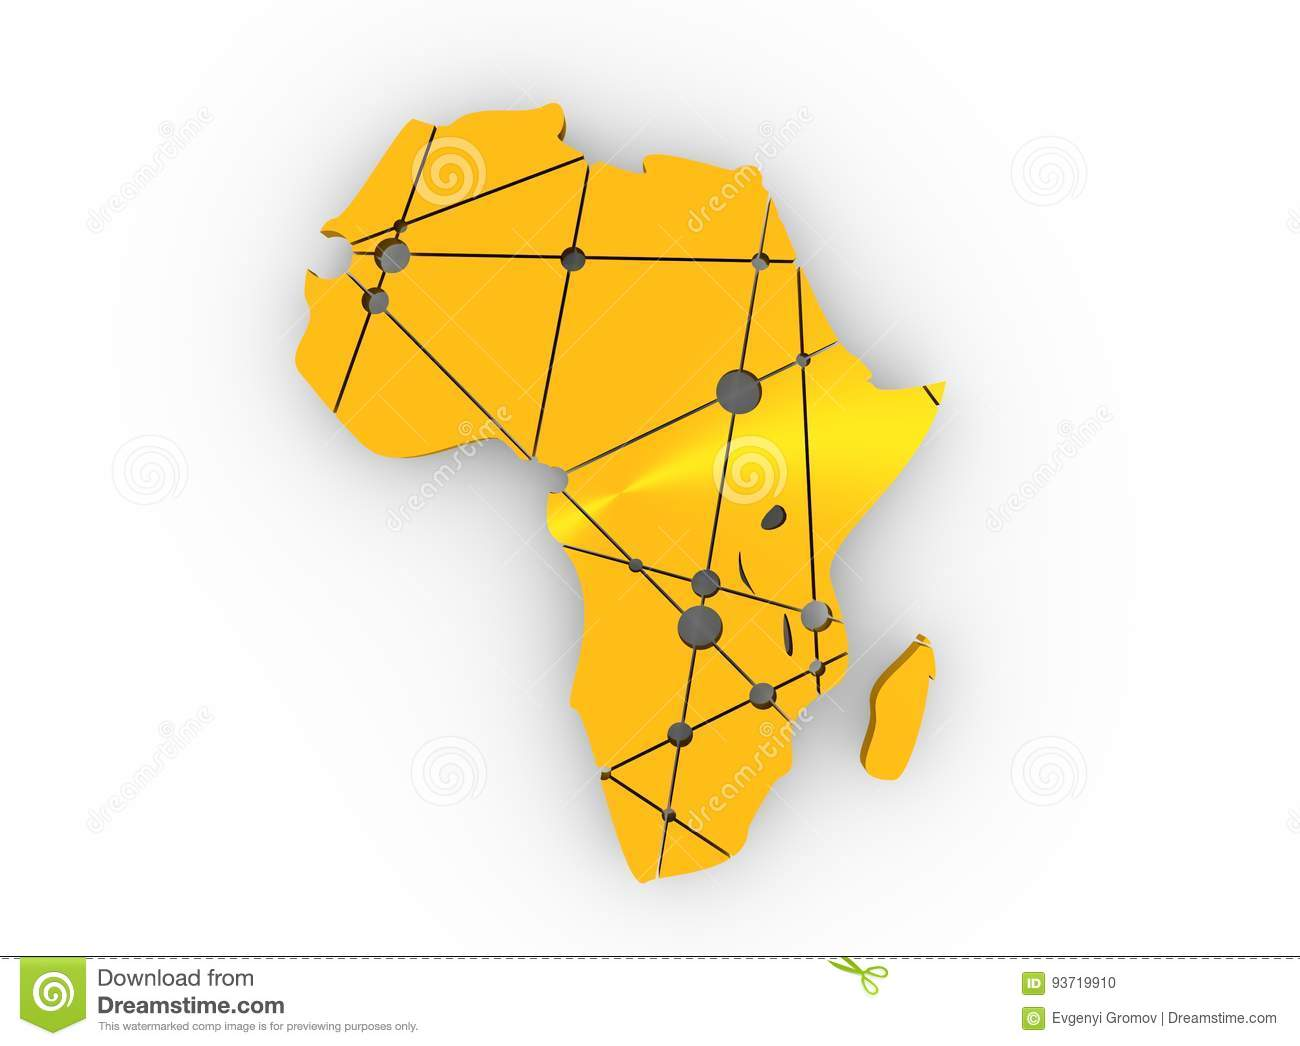 Low poly map of africa stock photo image of background 93719910 download comp ccuart Images